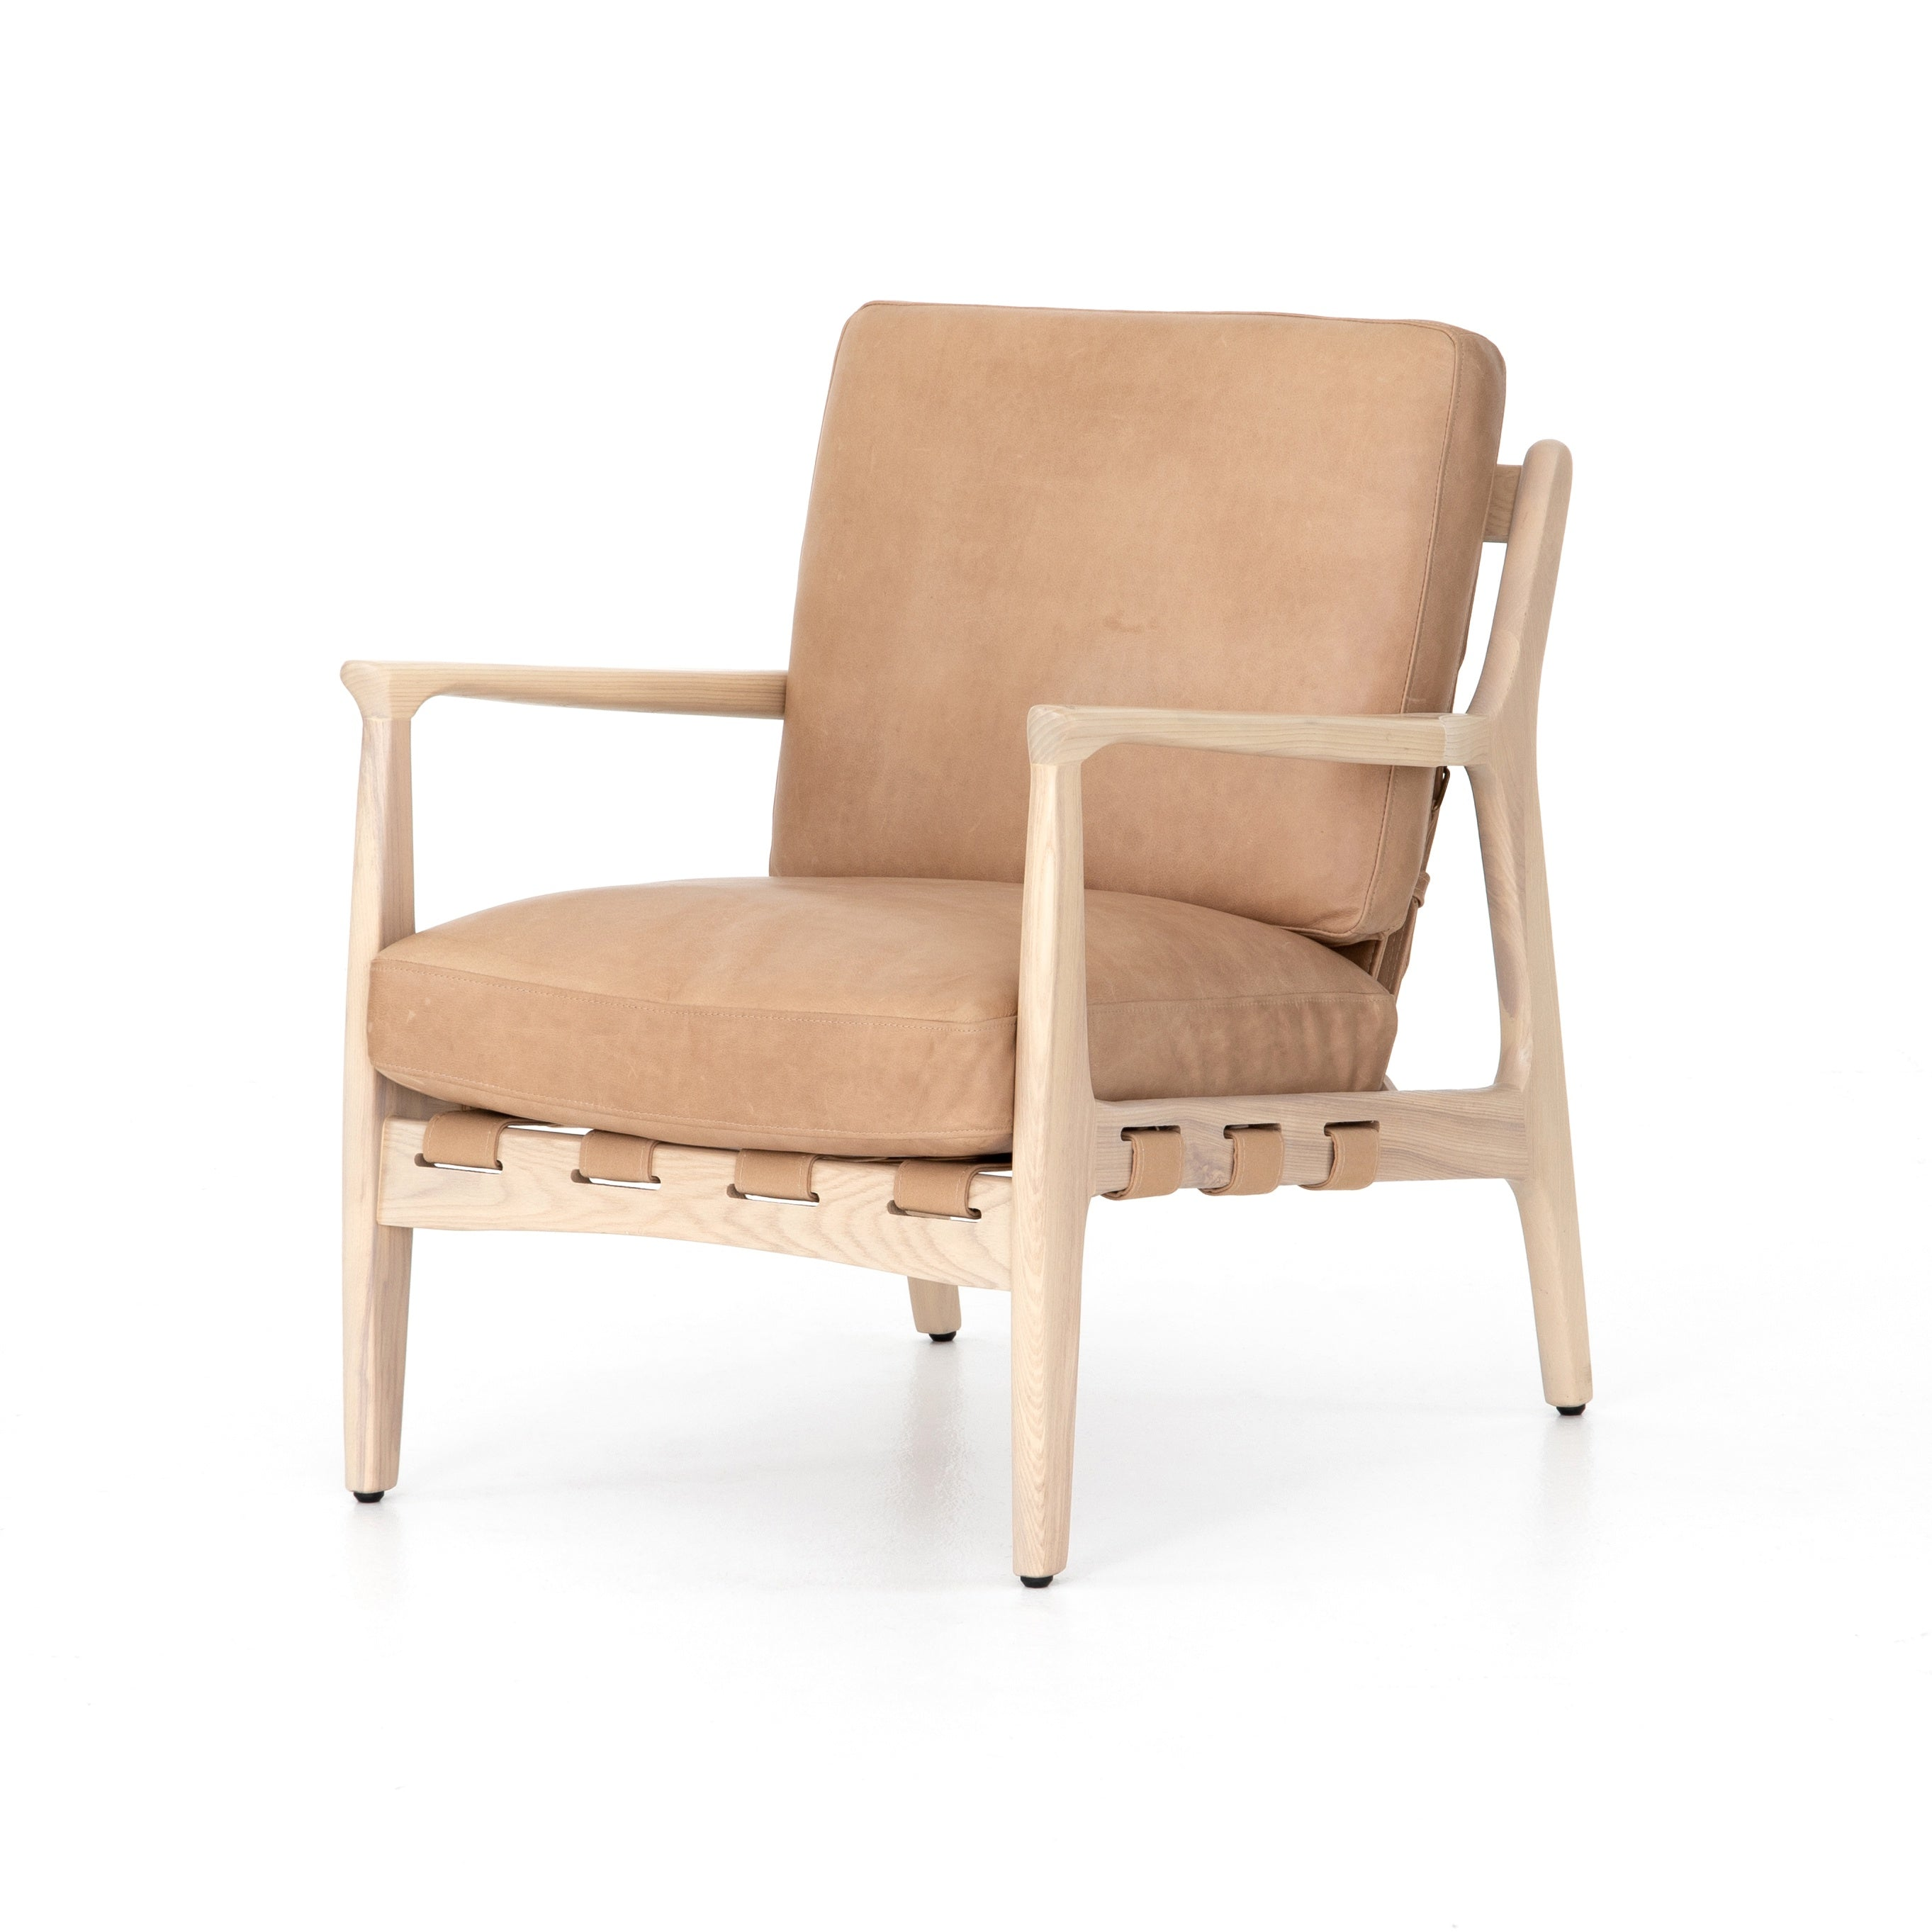 Seymour Chair in Sahara Tan - WishBasket